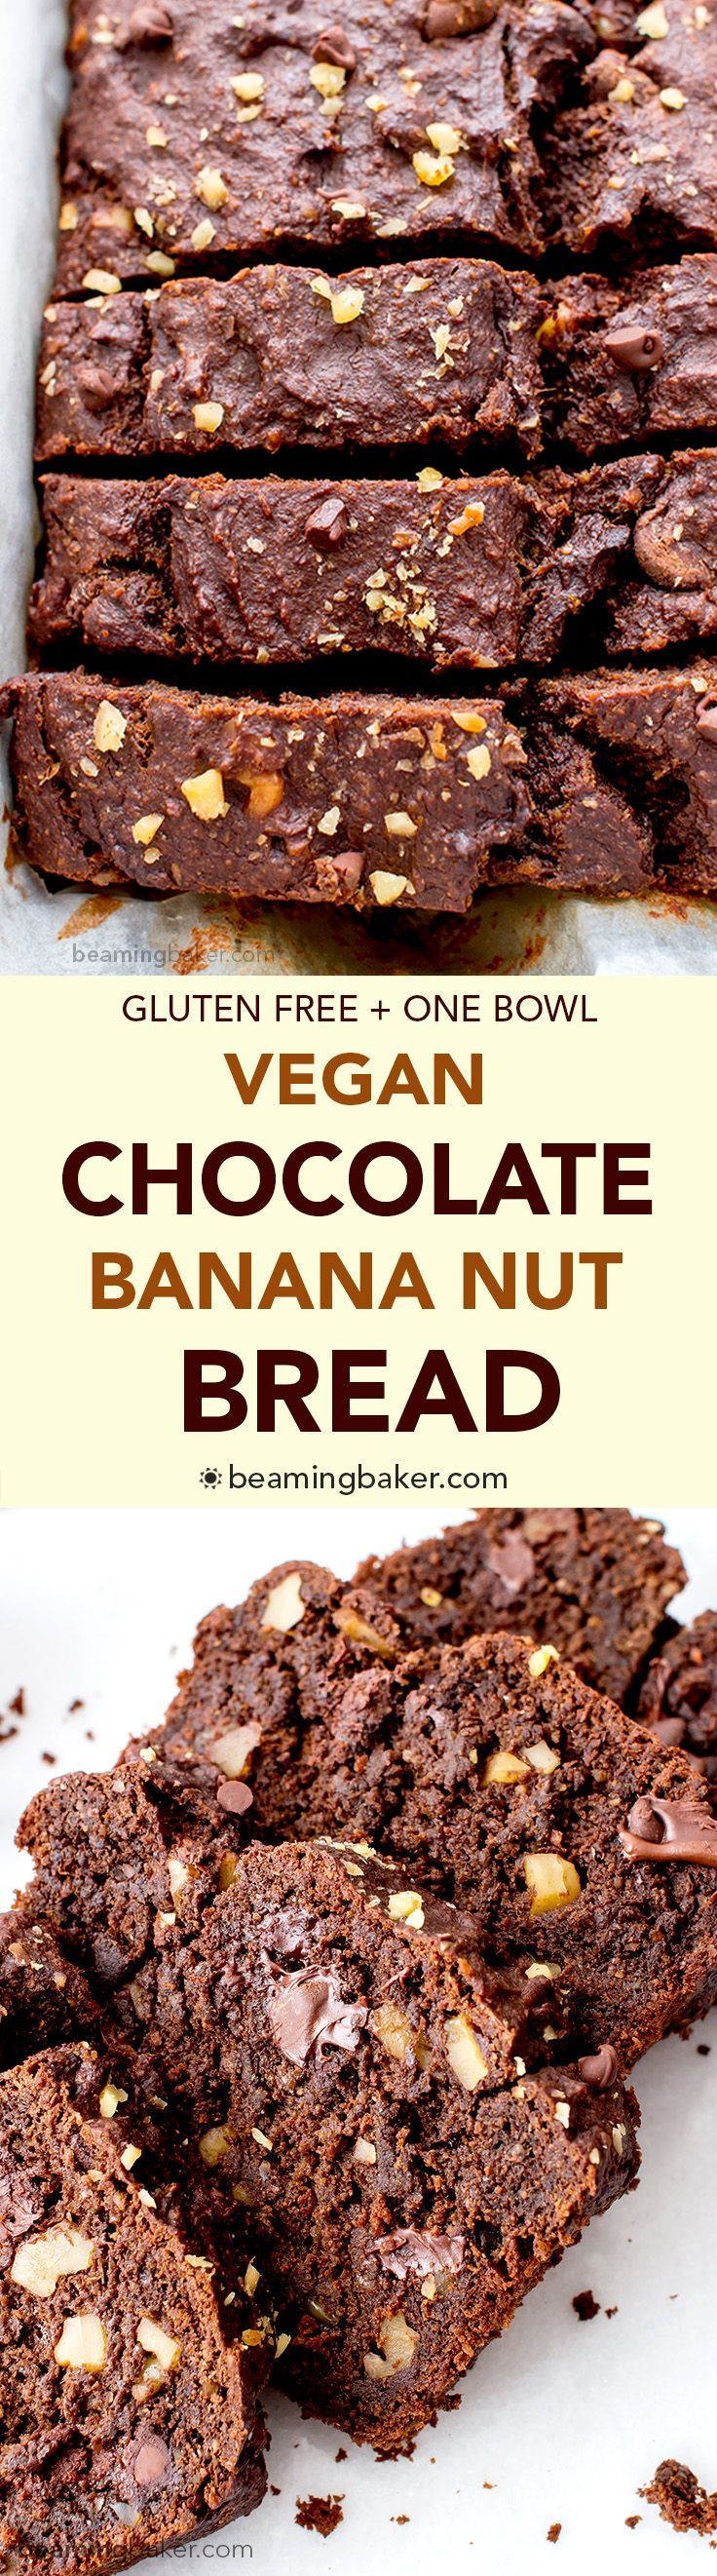 Vegan Chocolate Banana Nut Bread (V+GF): A one bowl recipe for rich, moist and chocolatey banana bread with walnuts. #Vegan #GlutenFree | http://BeamingBaker.com